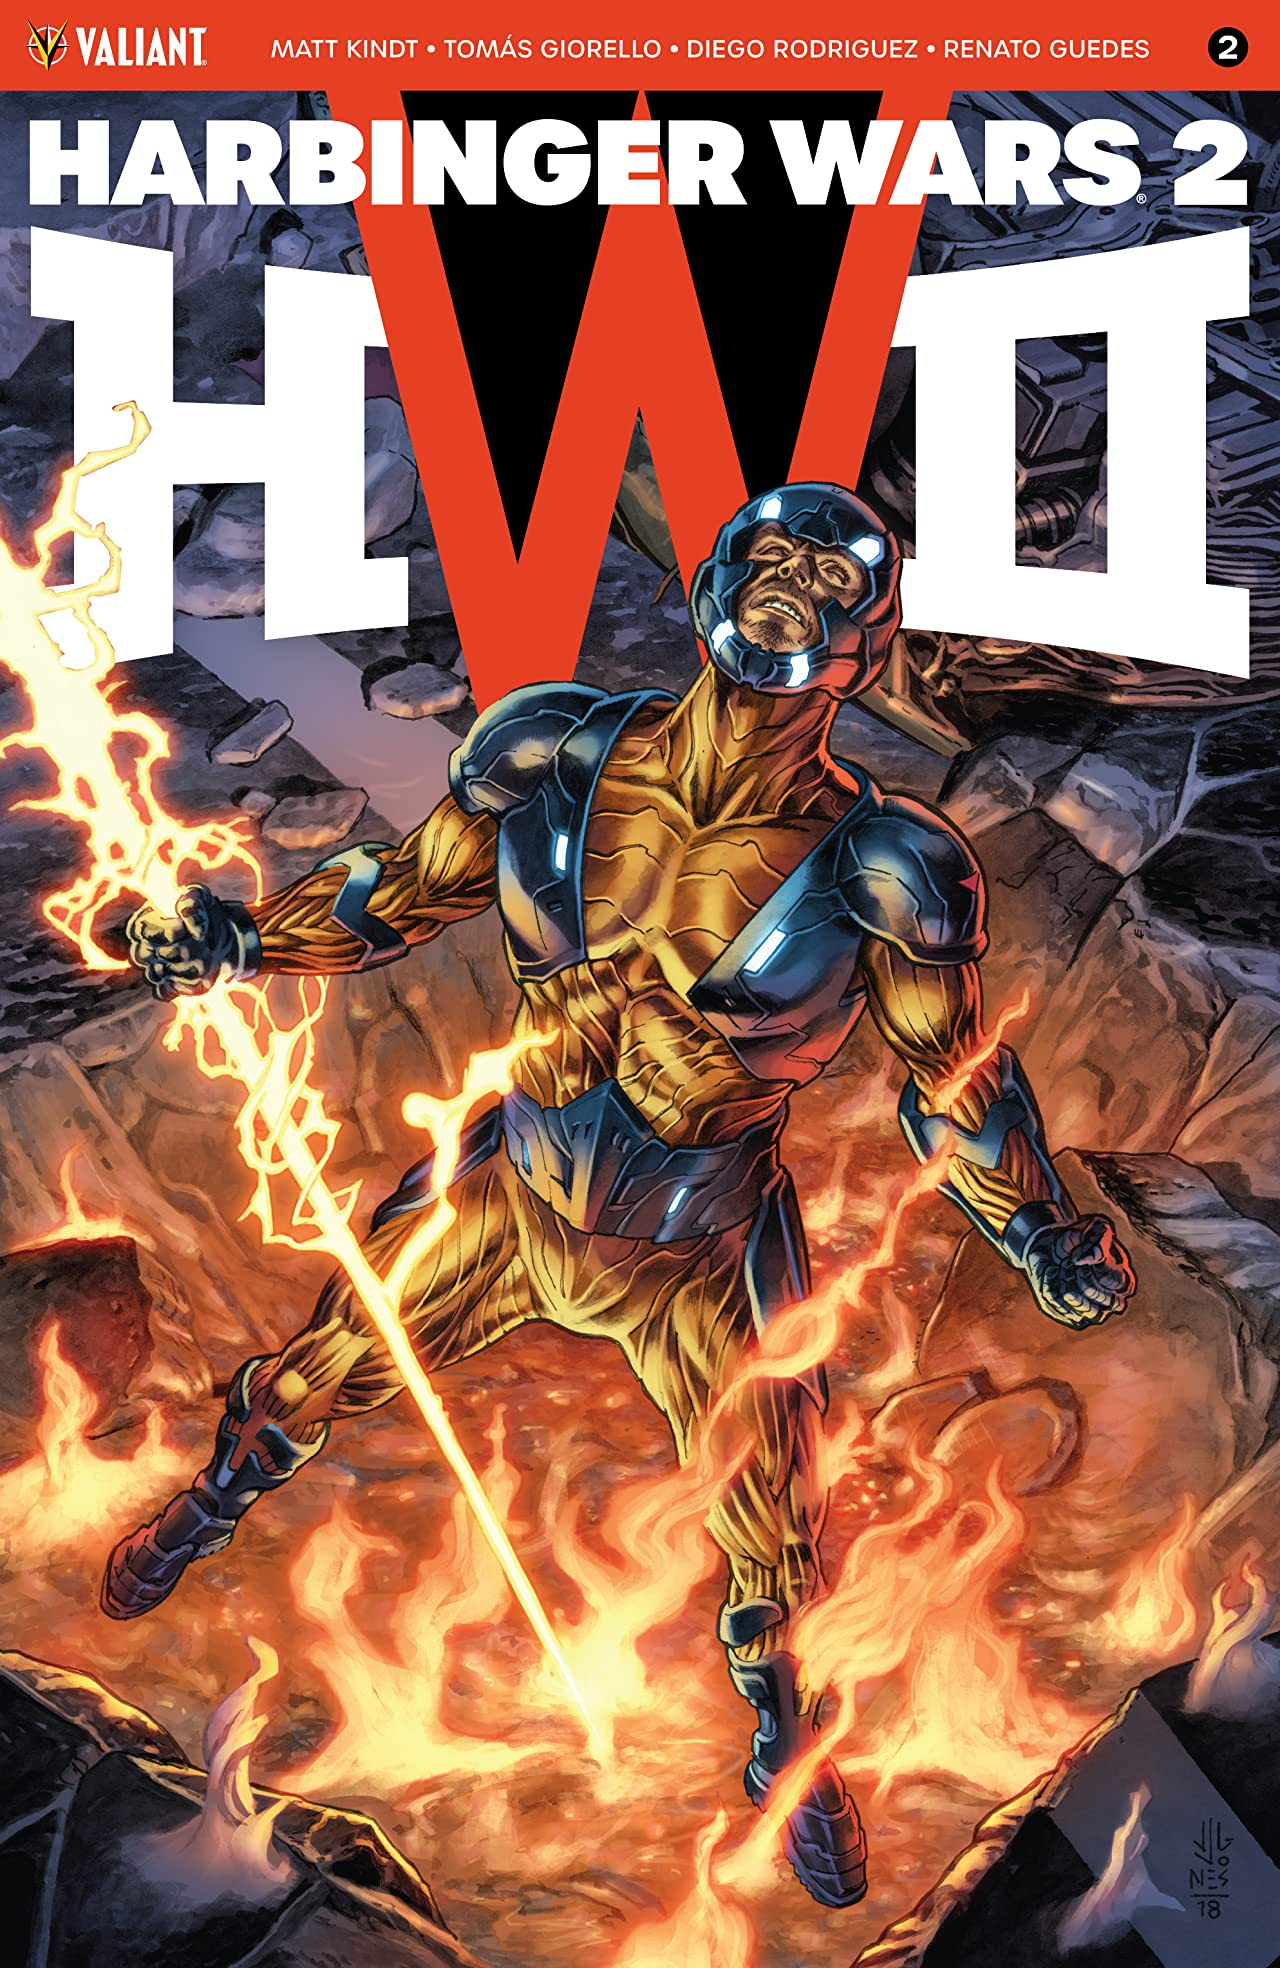 Harbinger Wars 2 No.2